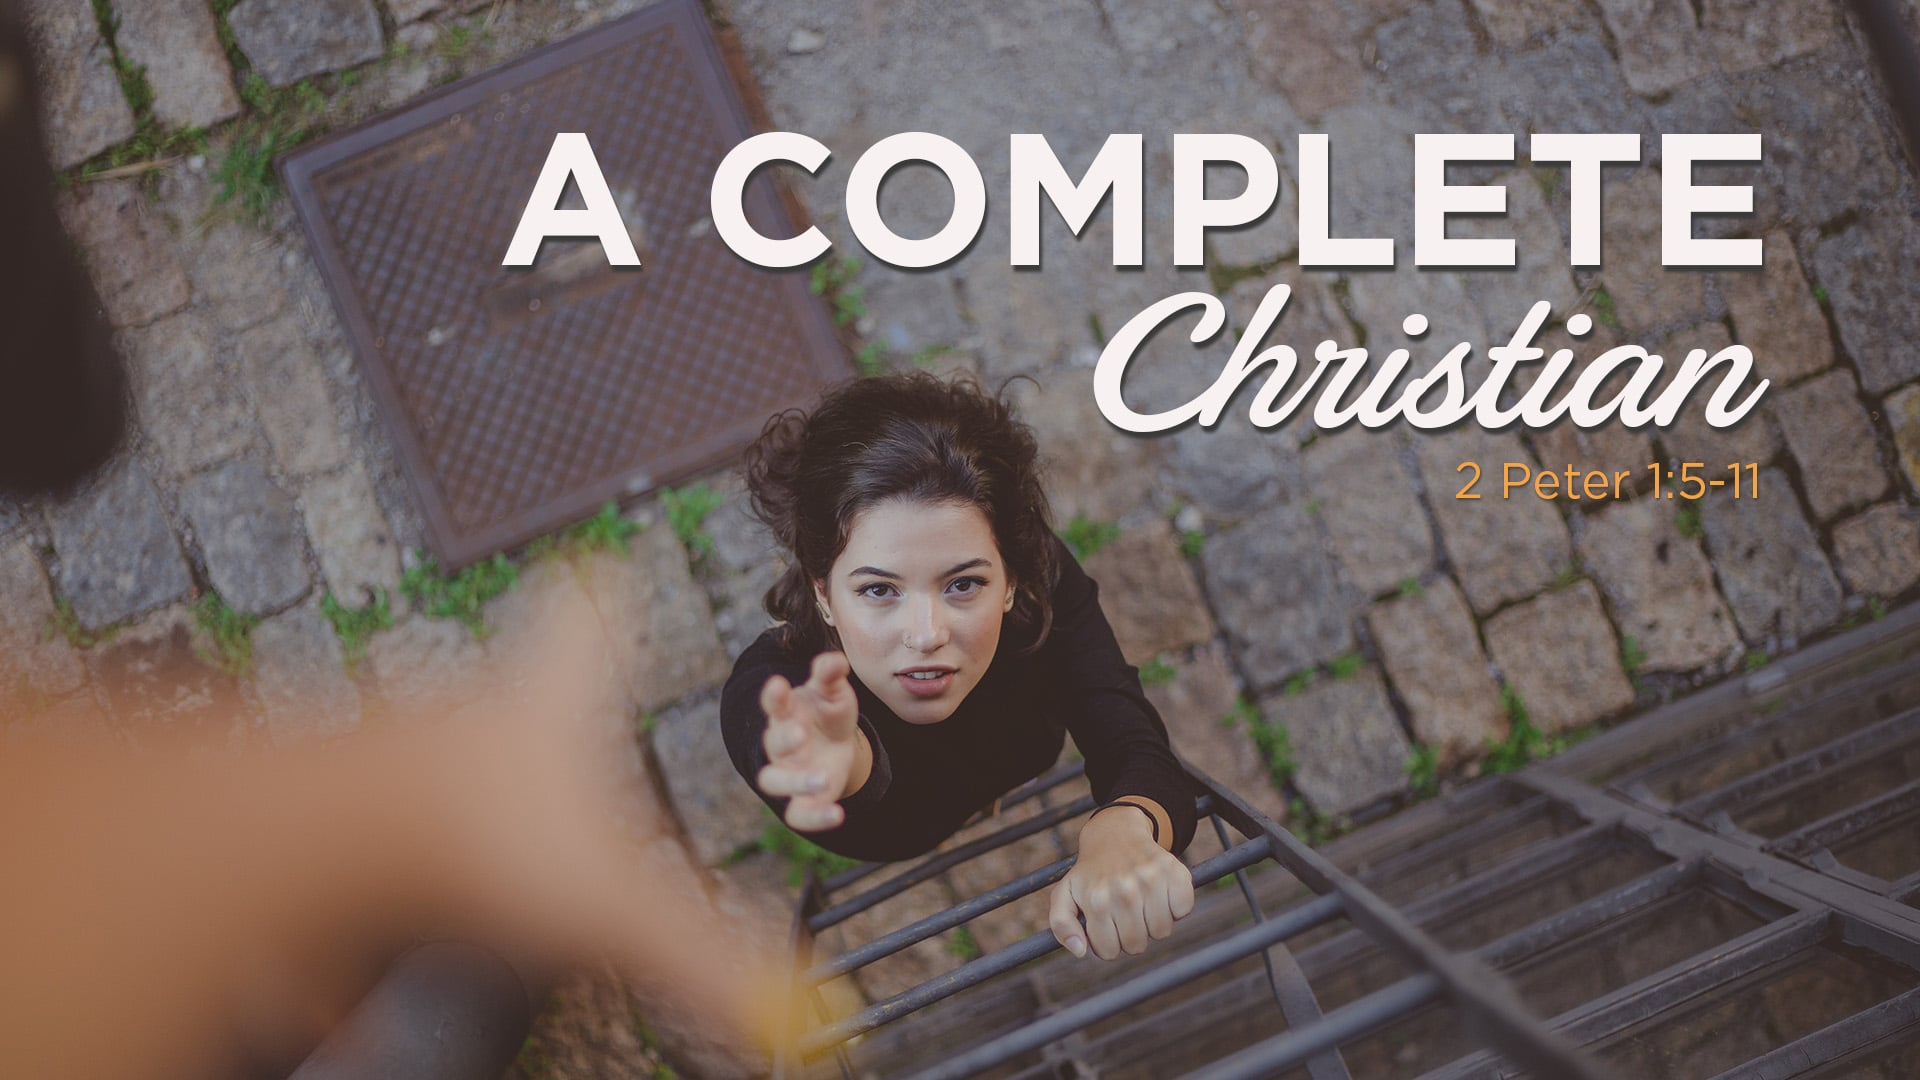 A Complete Christian